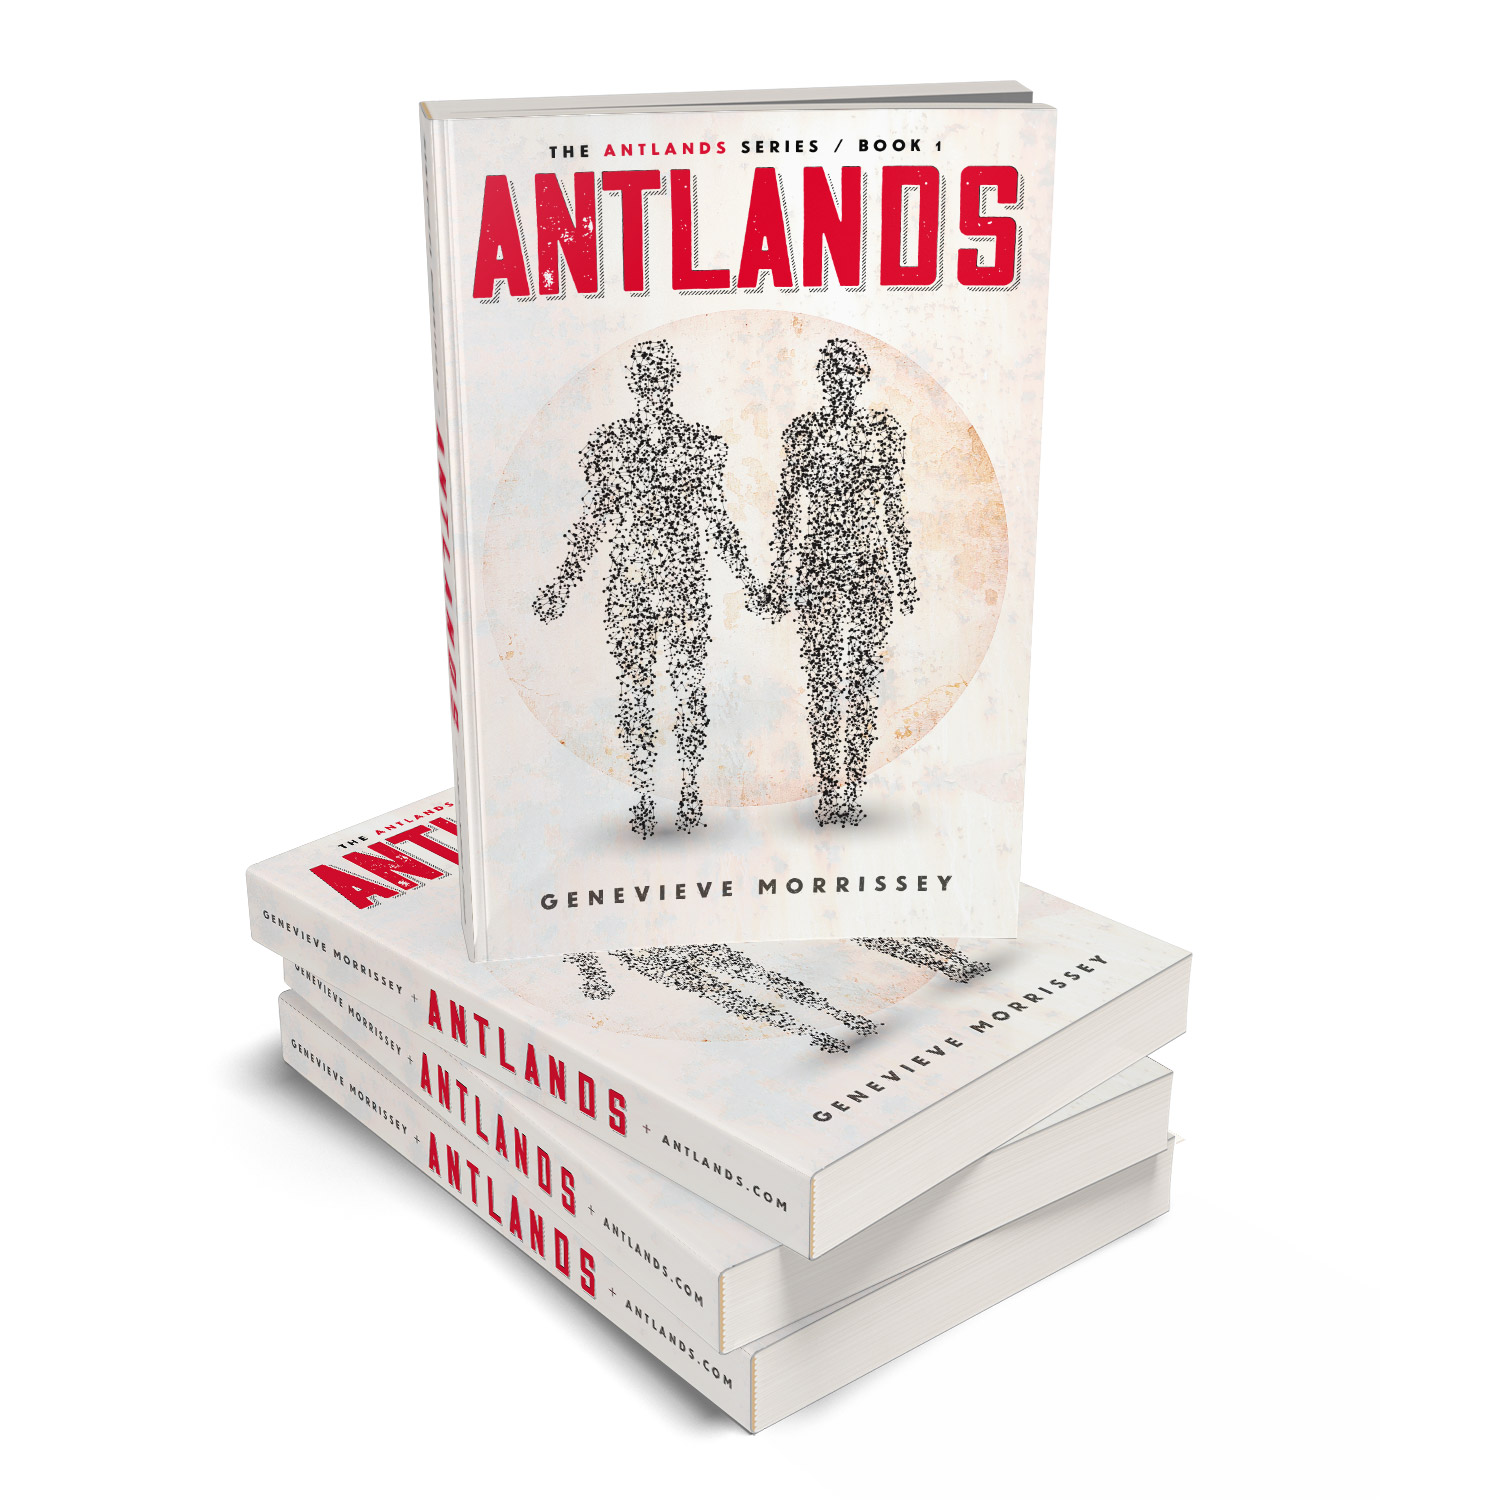 'Antlands' is an immersive, post-apocalyse scifi novel. The author is Genevieve Morrissey. The book cover design and interior formatting are by Mark Thomas. To learn more about what Mark could do for your book, please visit coverness.com.